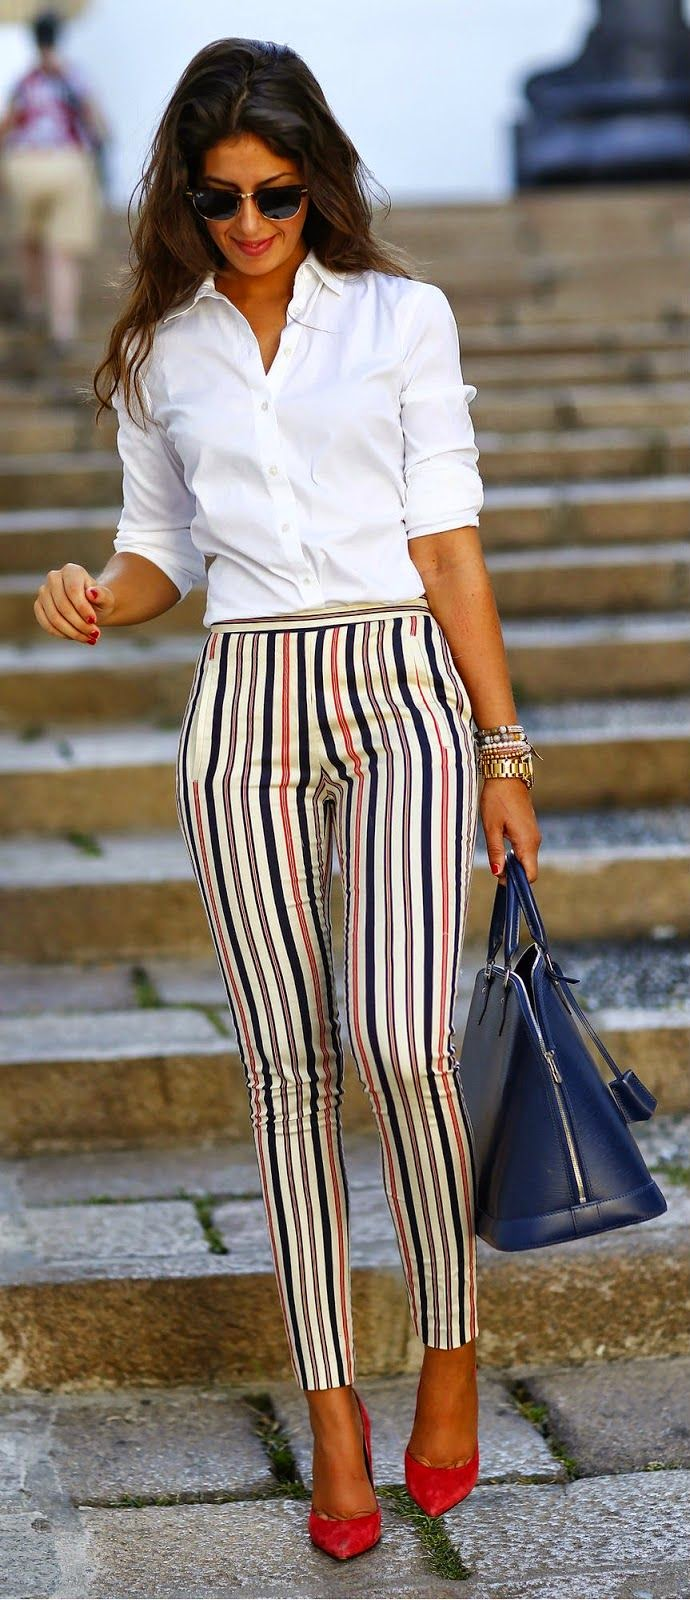 Daily New Fashion : Best Street Fashion Inspiration And Looks.1